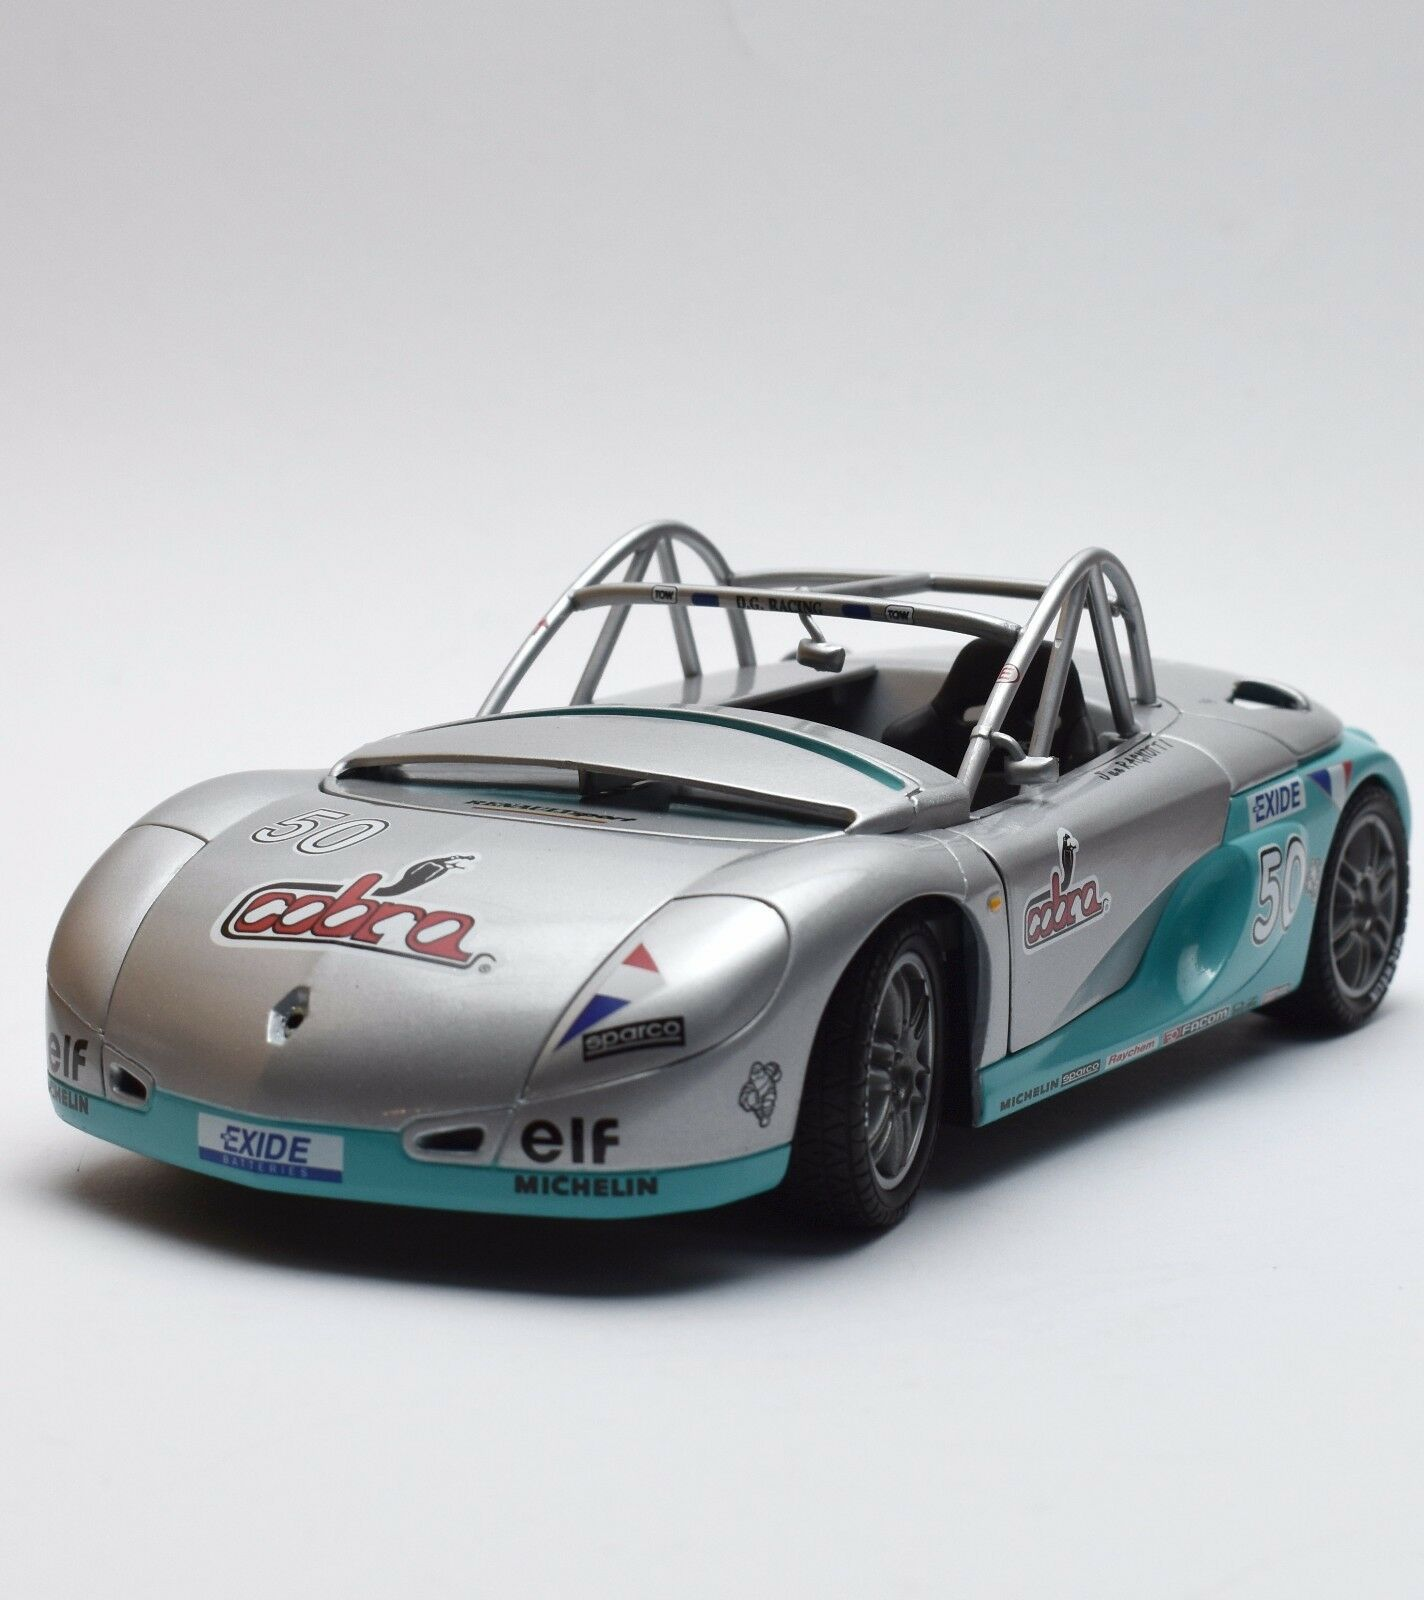 Anson RACING Renault Spider auto sportive in argentoo laccato, OVP, 1 18, k006